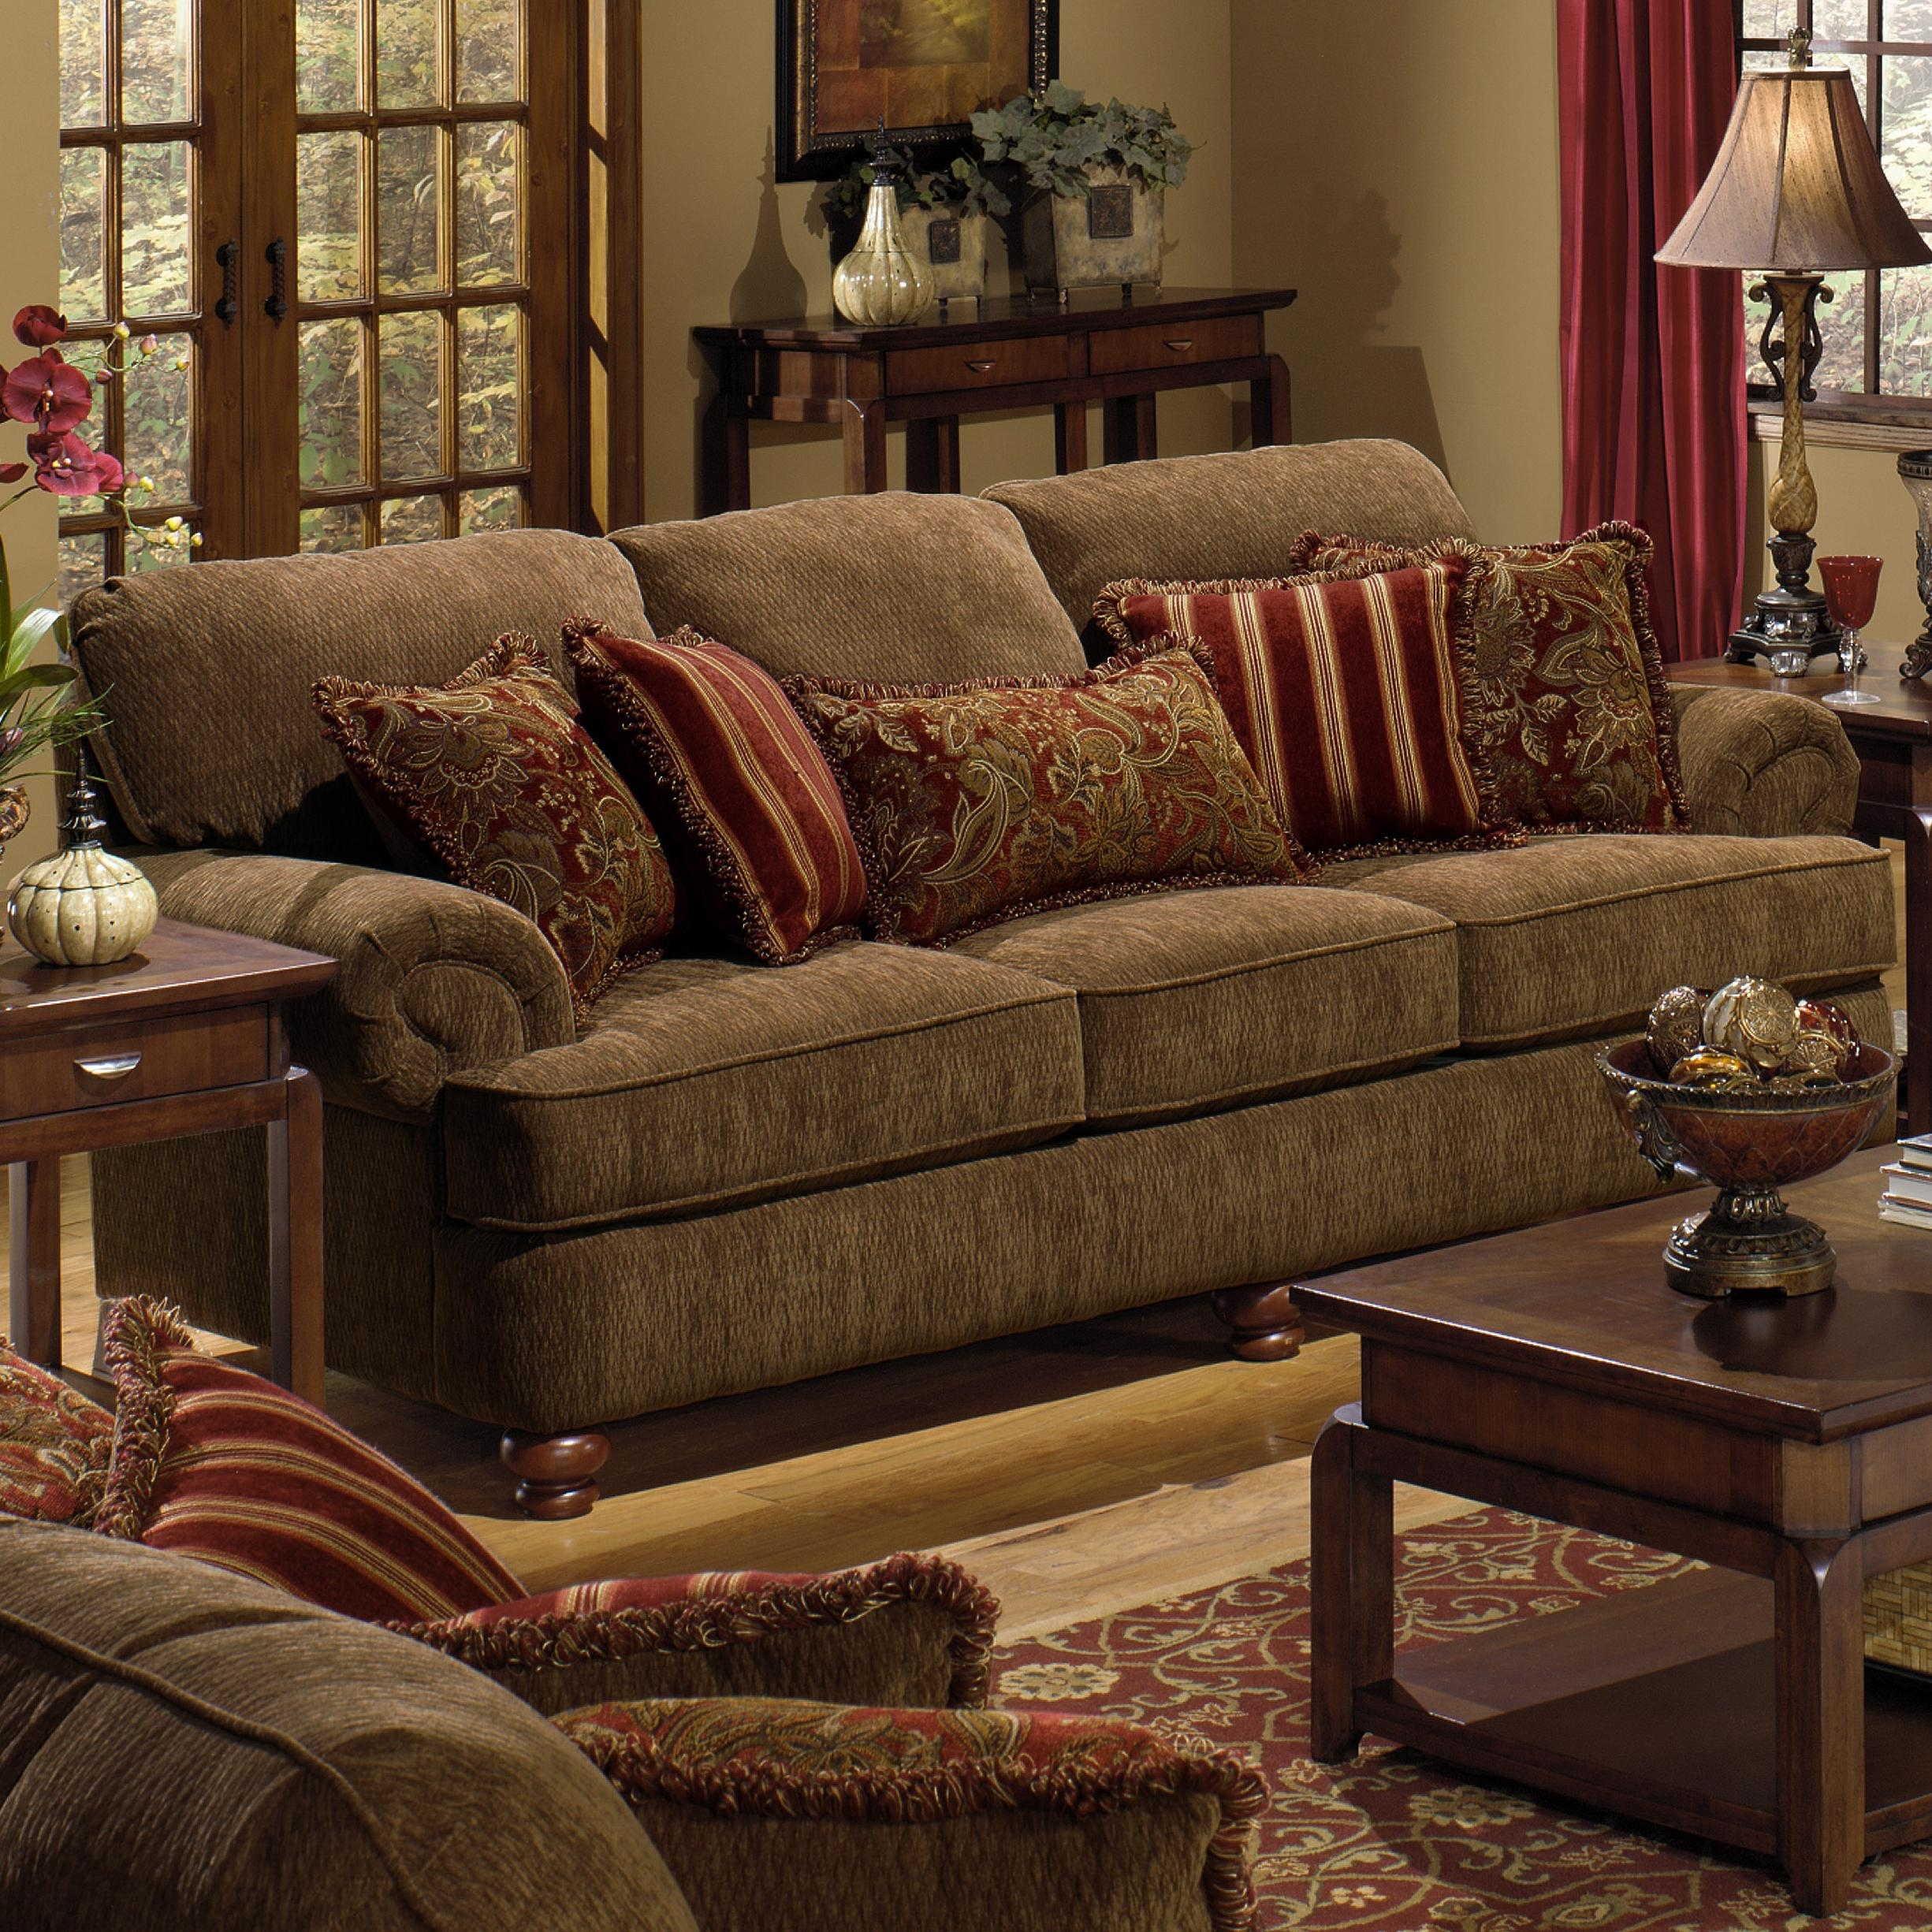 Living Room : Decorative Pillows For Sofa Cheap Decorative Cushions throughout Sofas With Oversized Pillows (Image 5 of 10)